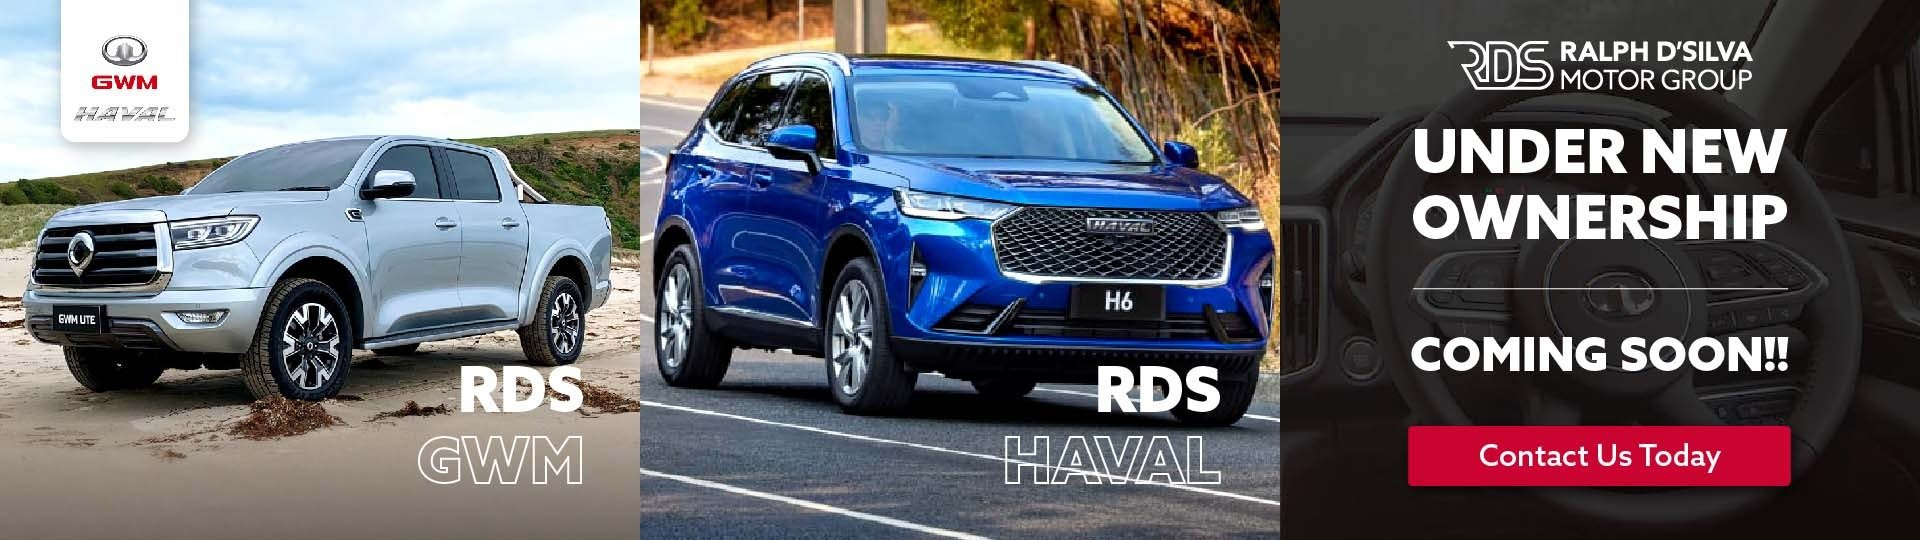 Ralph D'Silva GWM HAVAL - Contact us today!